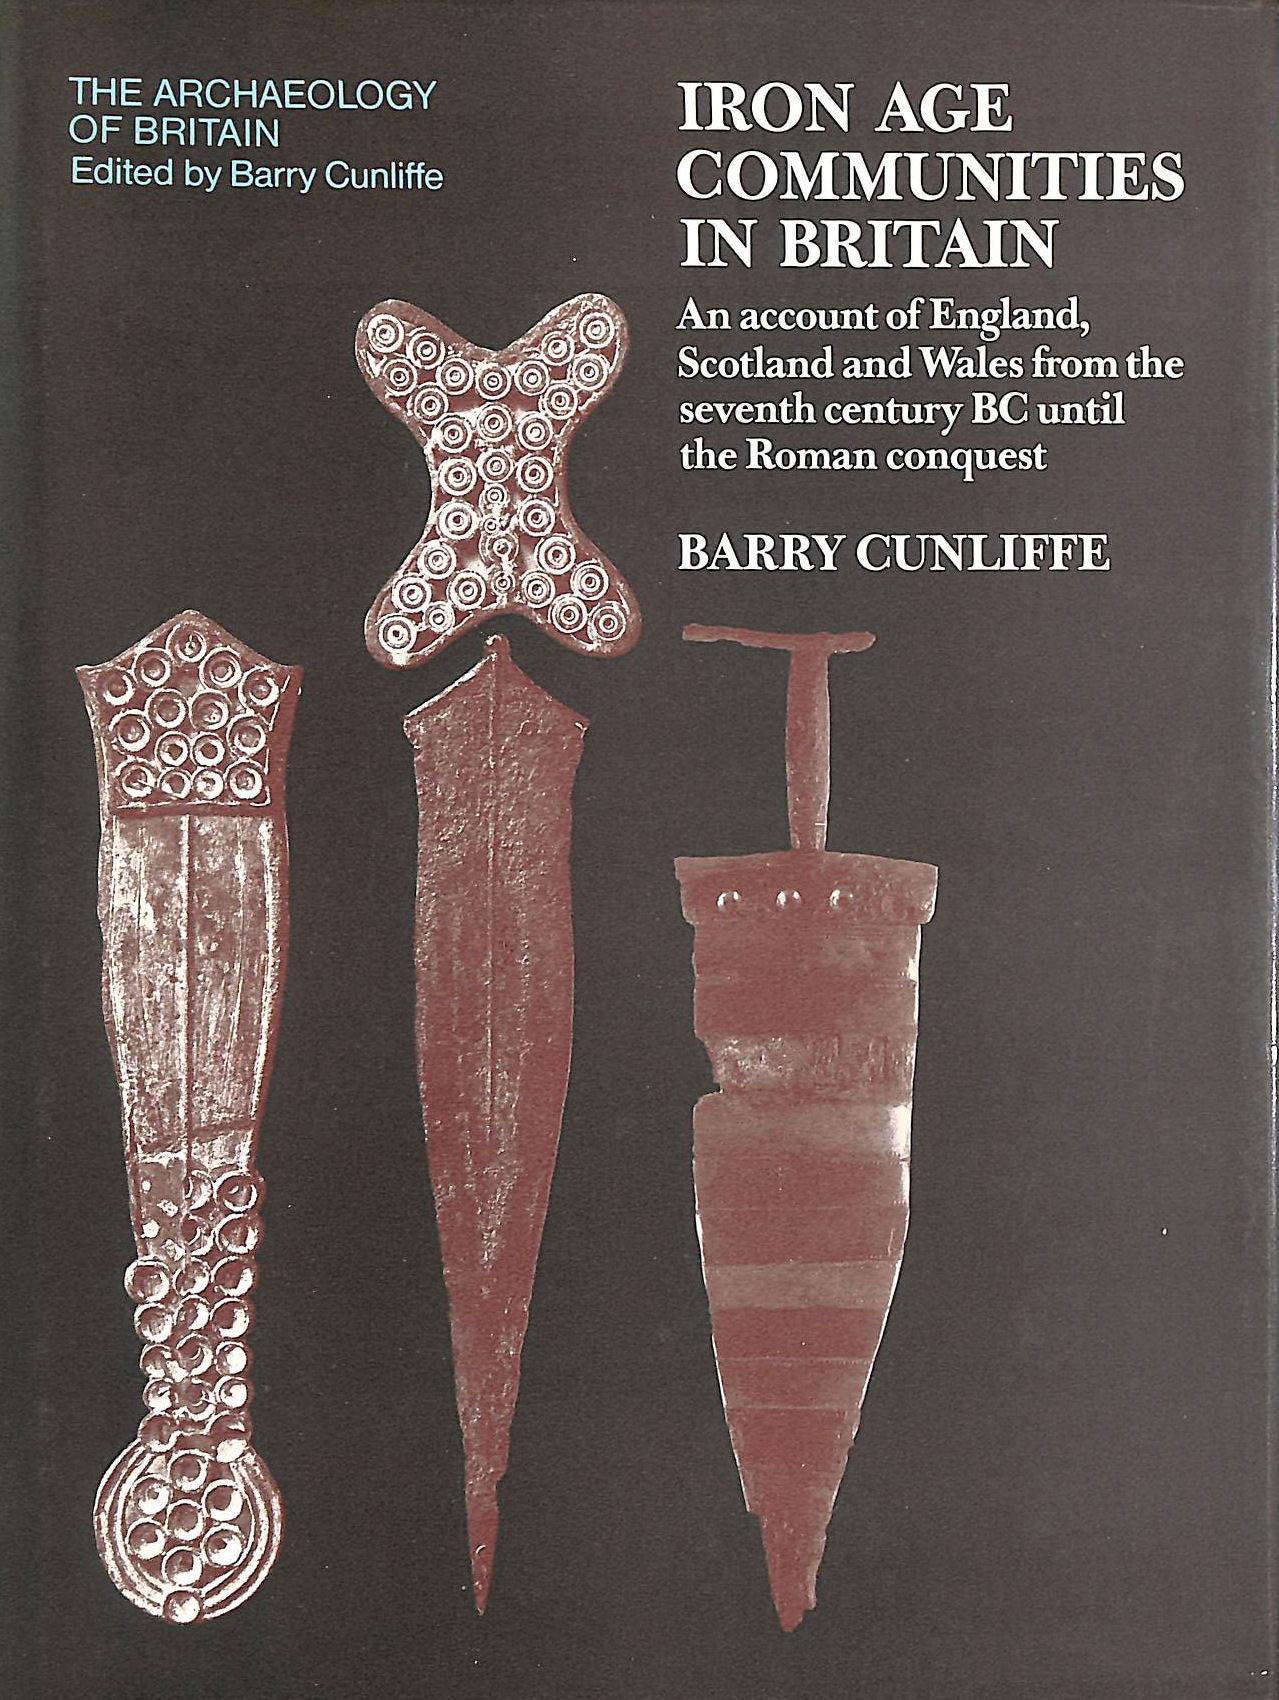 Image for Iron Age Communities in Britain: An Account of England, Scotland and Wales from the Seventh Century B.C.Until the Roman Conquest (Archaeology of Britain)